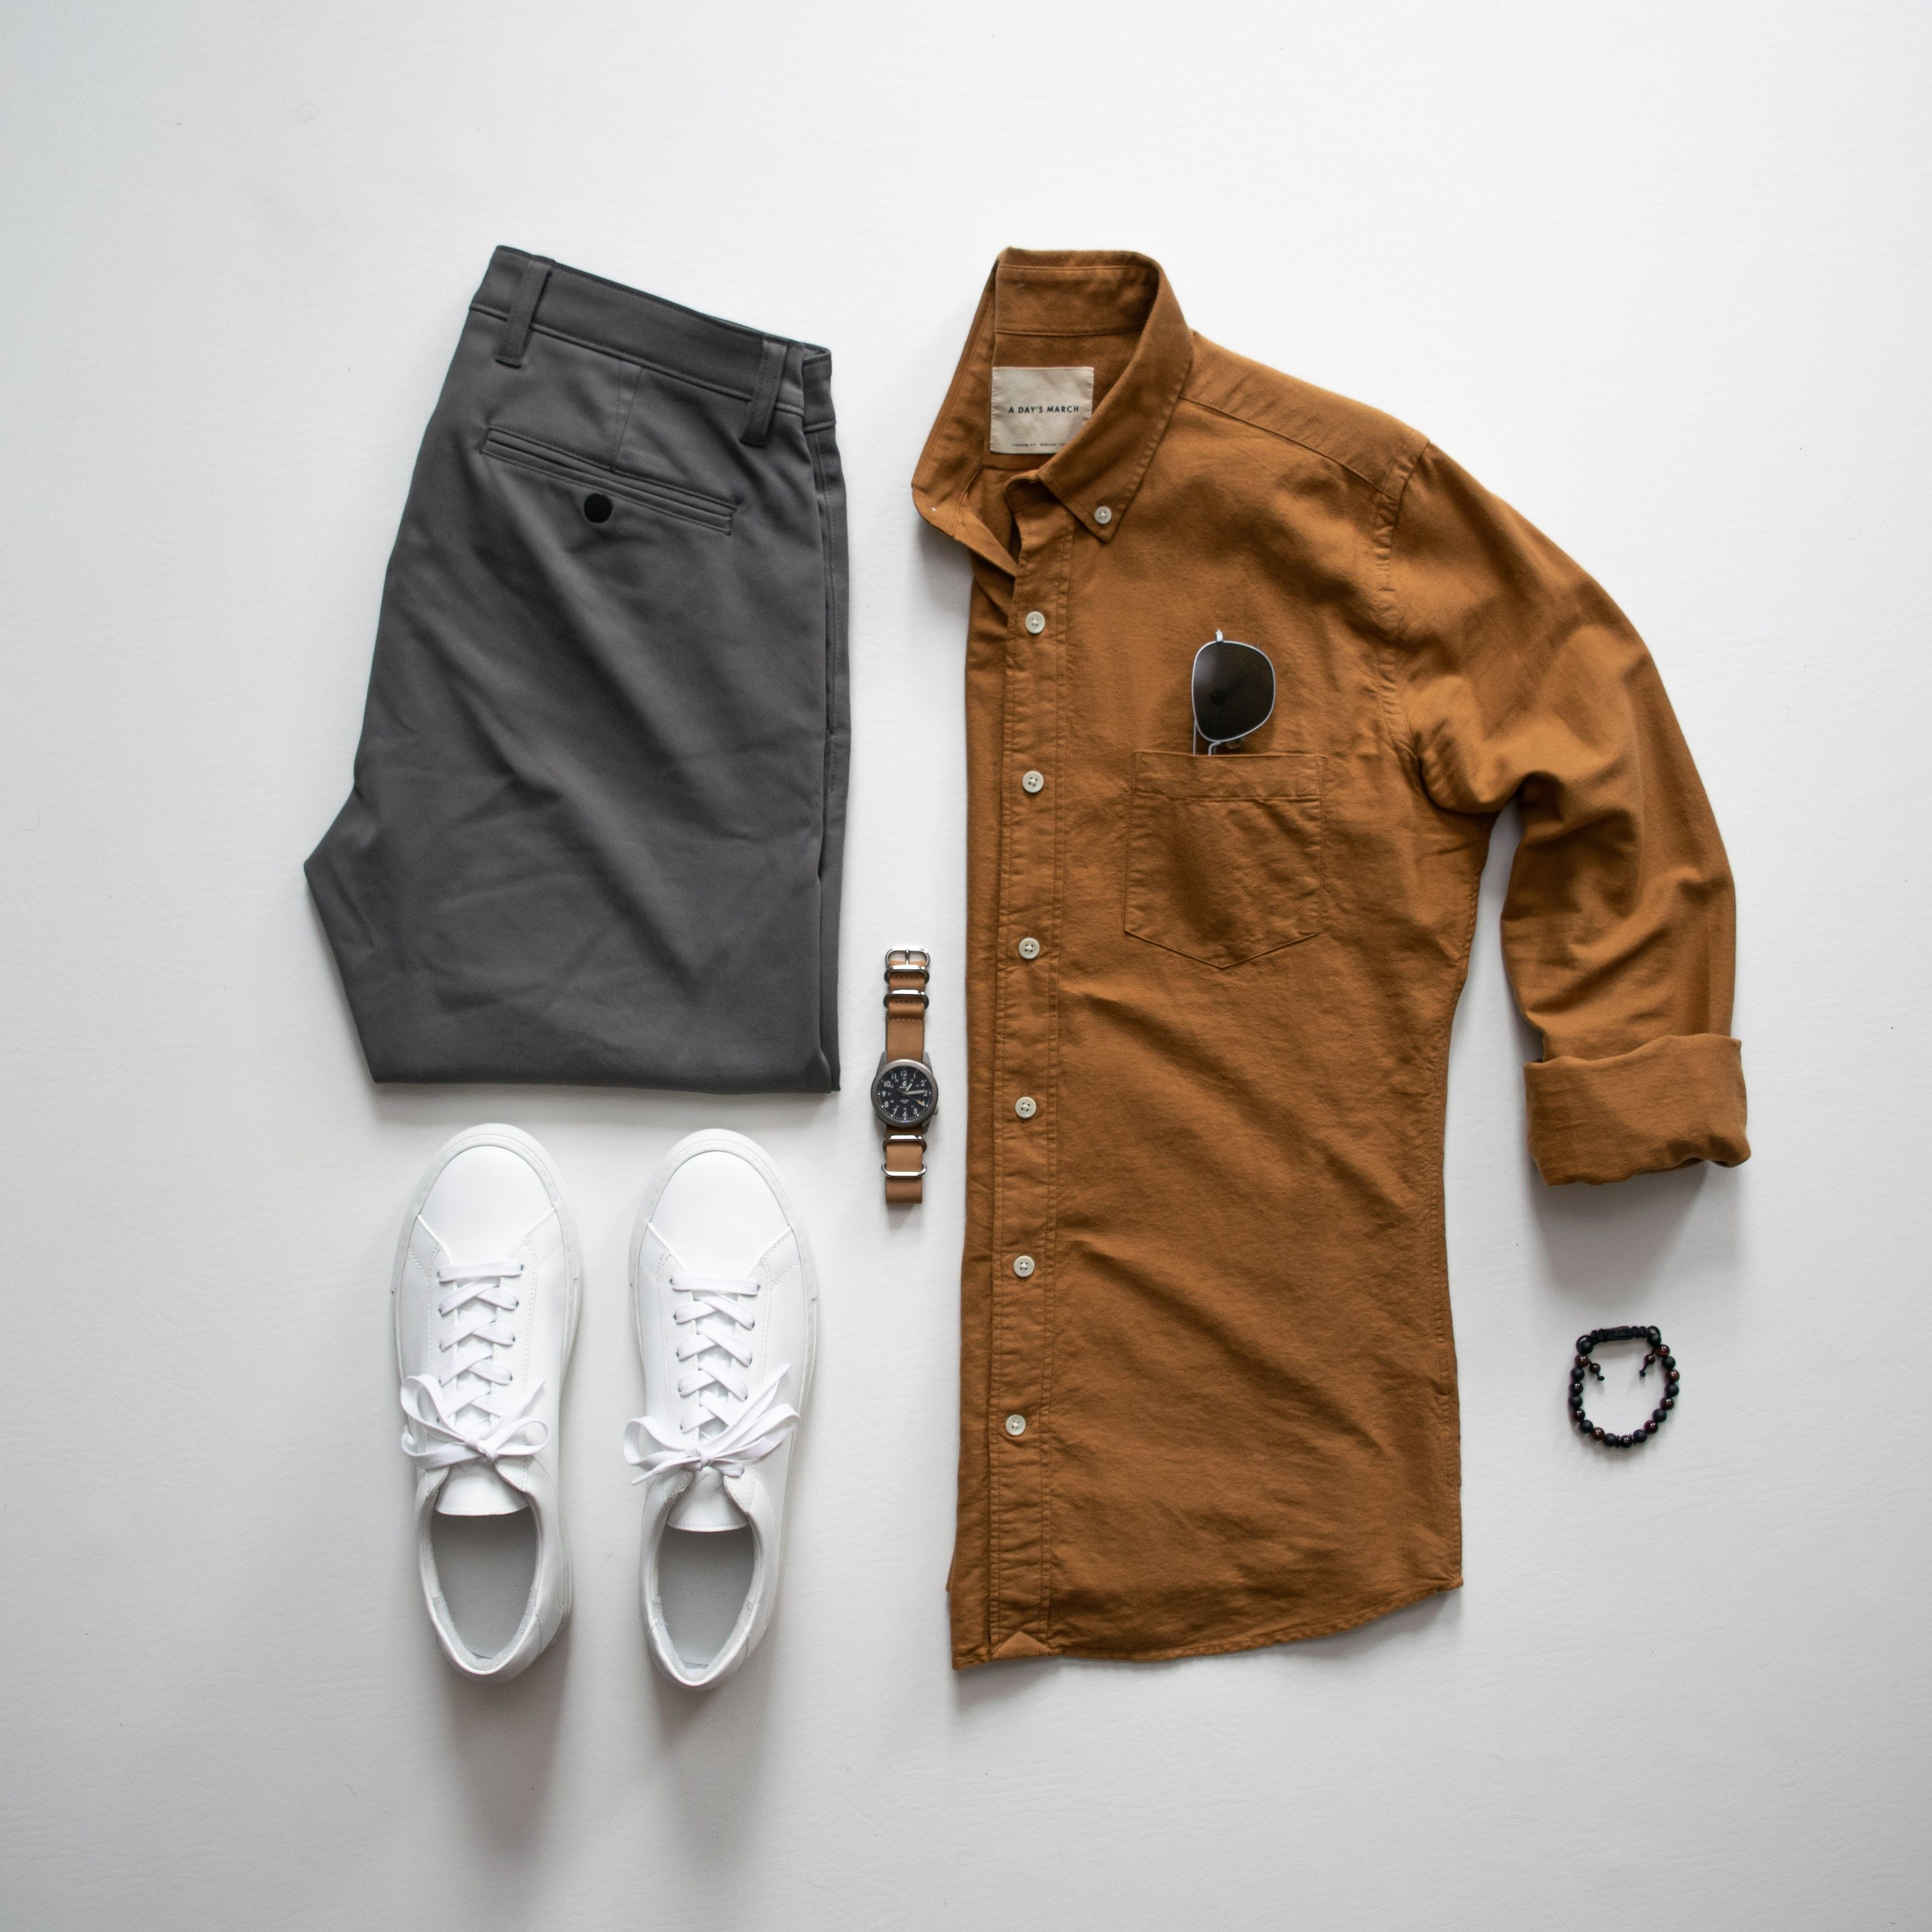 Men S Summer Fashion 2021 Style Trends Styles Of Man Mens Casual Dress Outfits Mens Casual Outfits Mens Casual Outfits Summer [ 3500 x 3500 Pixel ]